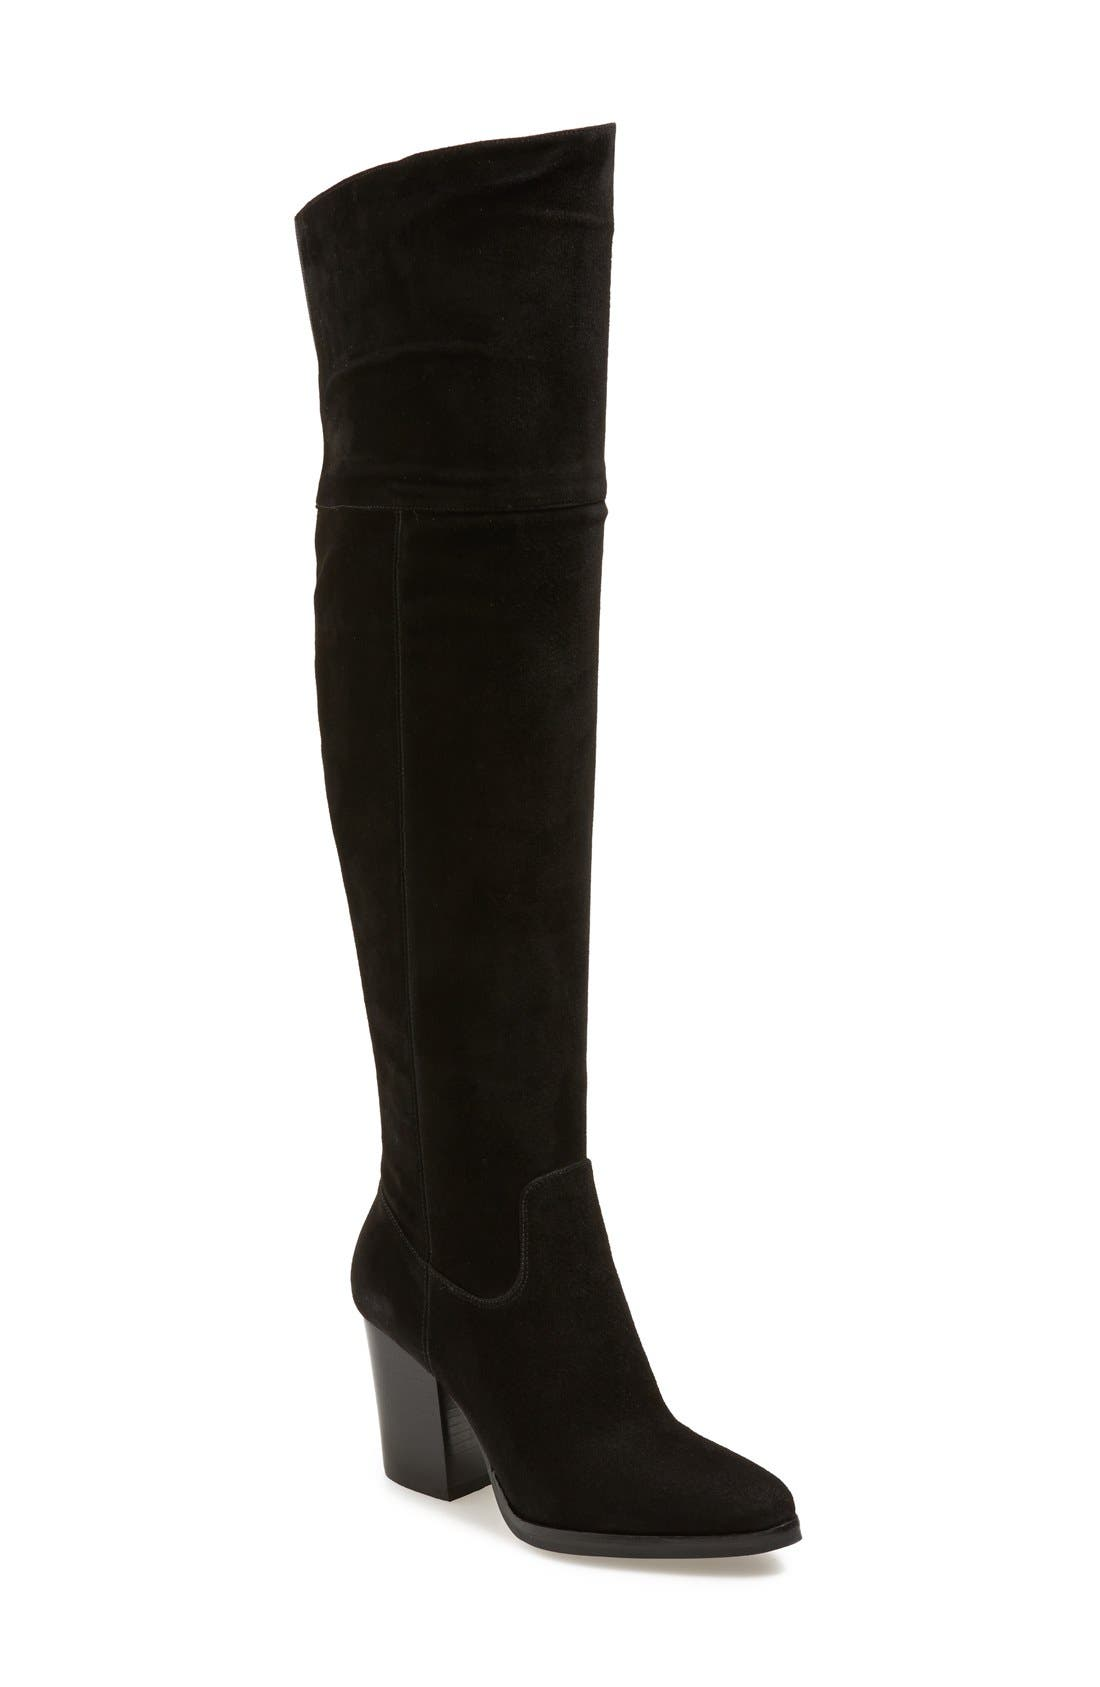 'Alana' Over the Knee Boot,                         Main,                         color, Black Suede